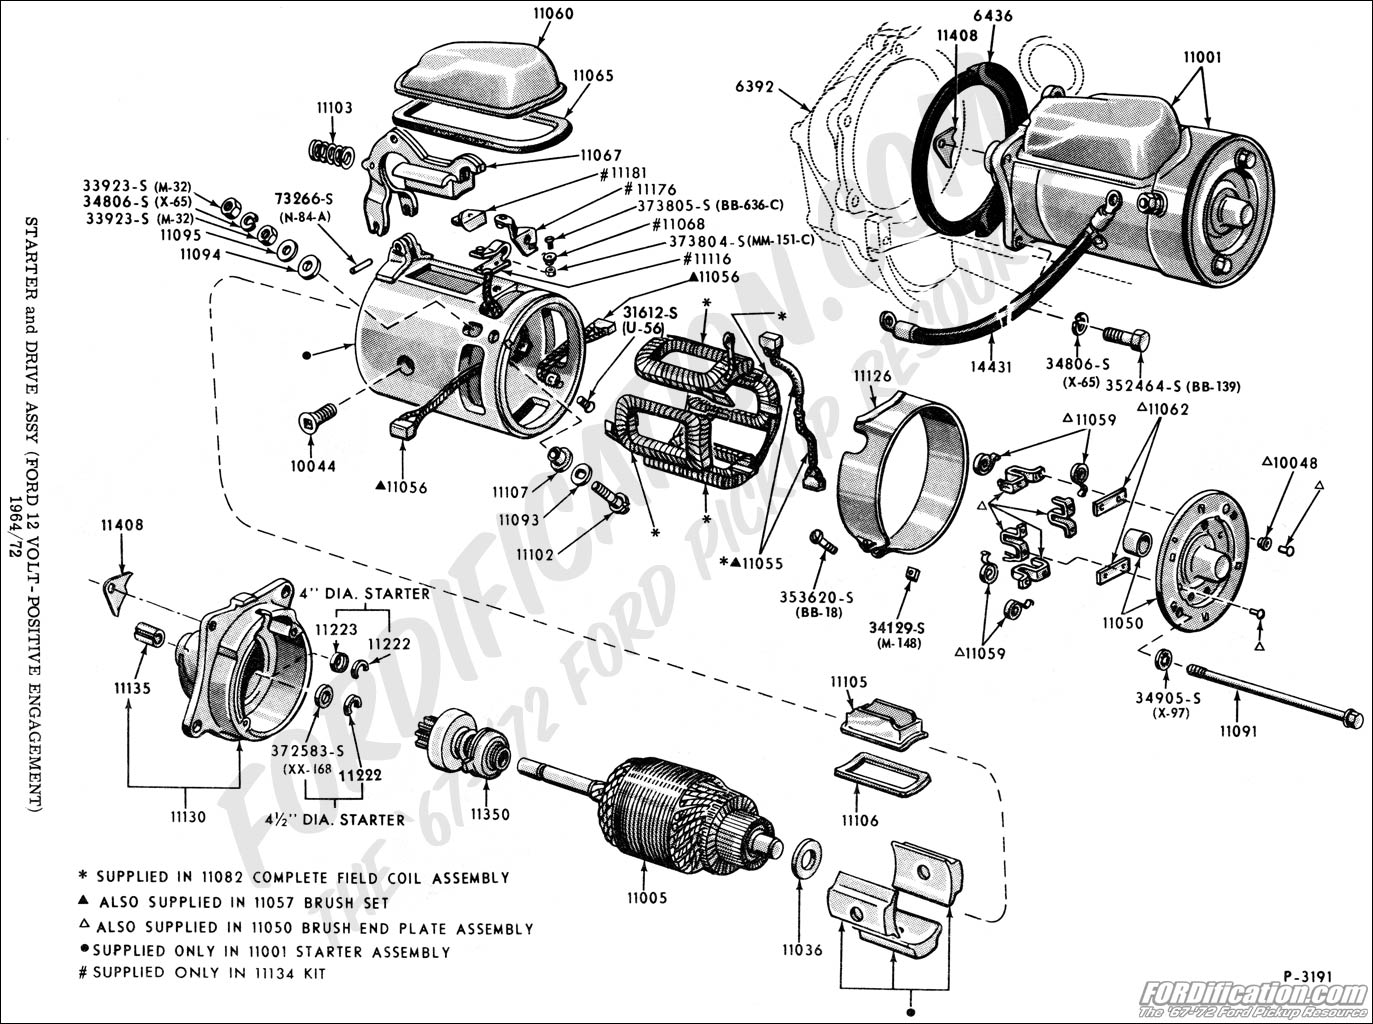 Ford Truck Technical Drawings and Schematics - Section I ... on 85 ford f150 suspension, 85 ford f150 engine, 85 ford f150 timing, 85 ford f150 seats, 85 ford f150 door, 85 ford f150 speaker, 85 ford f150 transmission, 85 ford f150 regulator, 85 ford f150 radio, 85 ford f150 exhaust system, 85 ford f150 parts, 85 ford f150 carburetor, 85 ford f150 headlight, 85 ford f150 brakes,